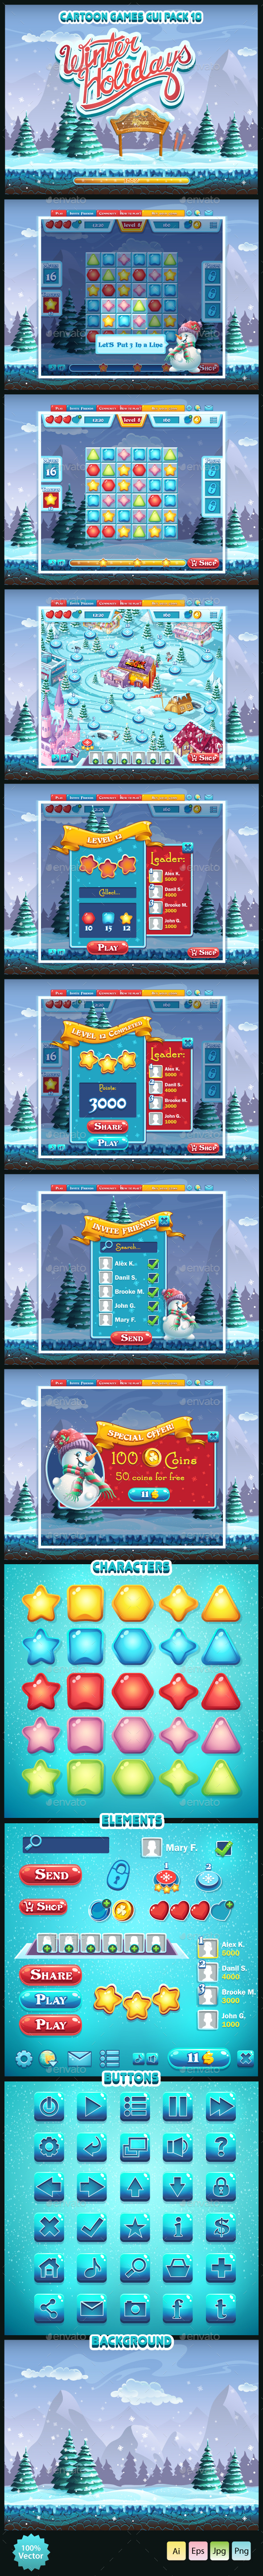 Winter holidays - GUI pack 10 - User Interfaces Game Assets